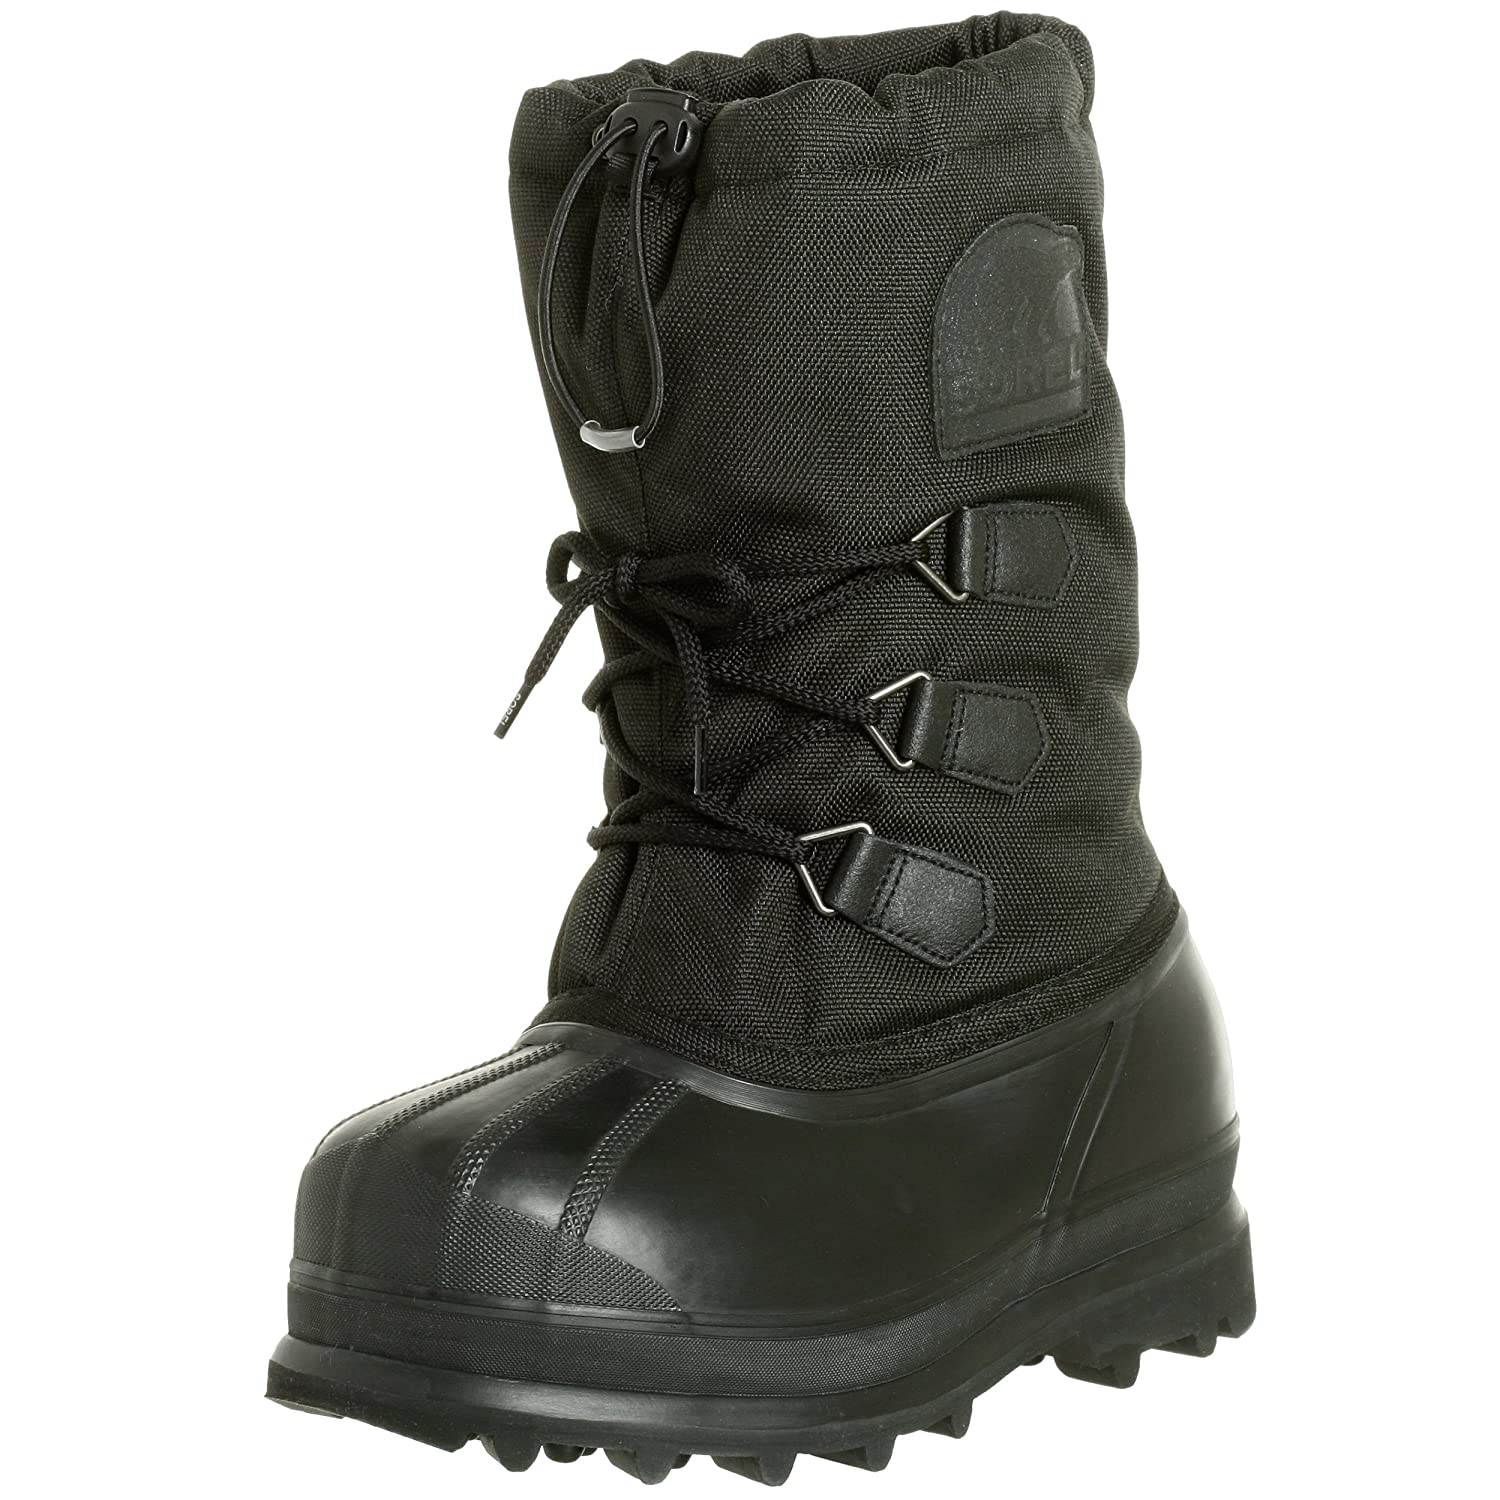 Sorel Glacier 1582 - Winter Boot (Little Kid/Big Kid)